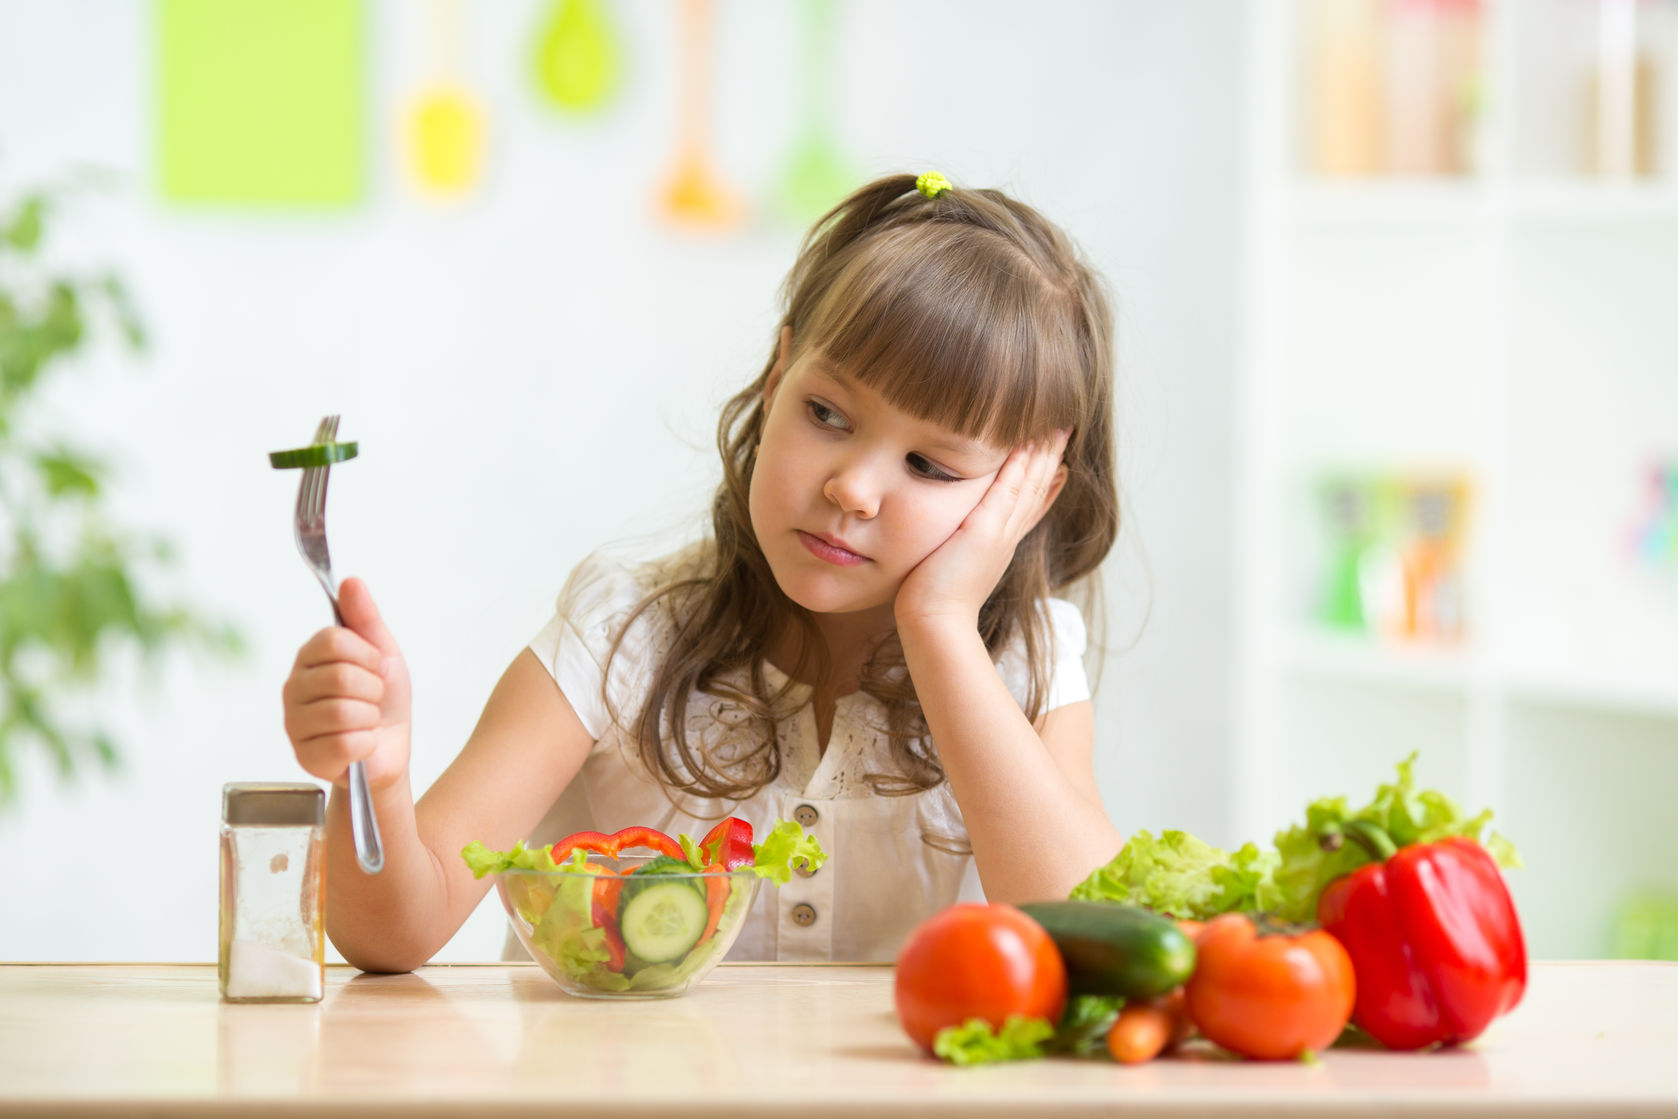 5 Smart Simple Tips To Teach Kids Healthy Eating Habits